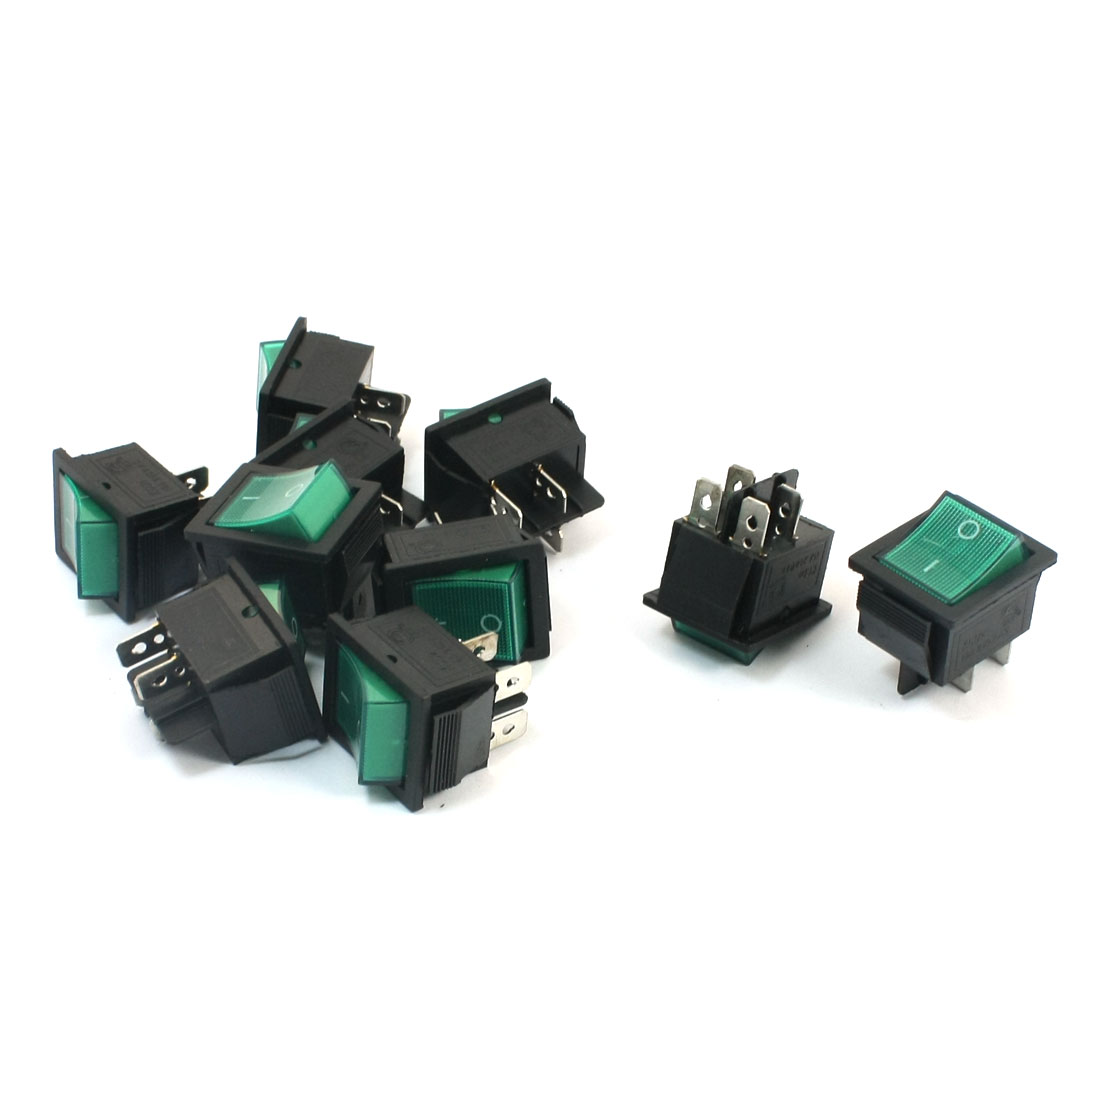 10pcs DPST ON/OFF 2Position 4Pins Green Button Snap in Boat Rocker Switch AC 250V 15A